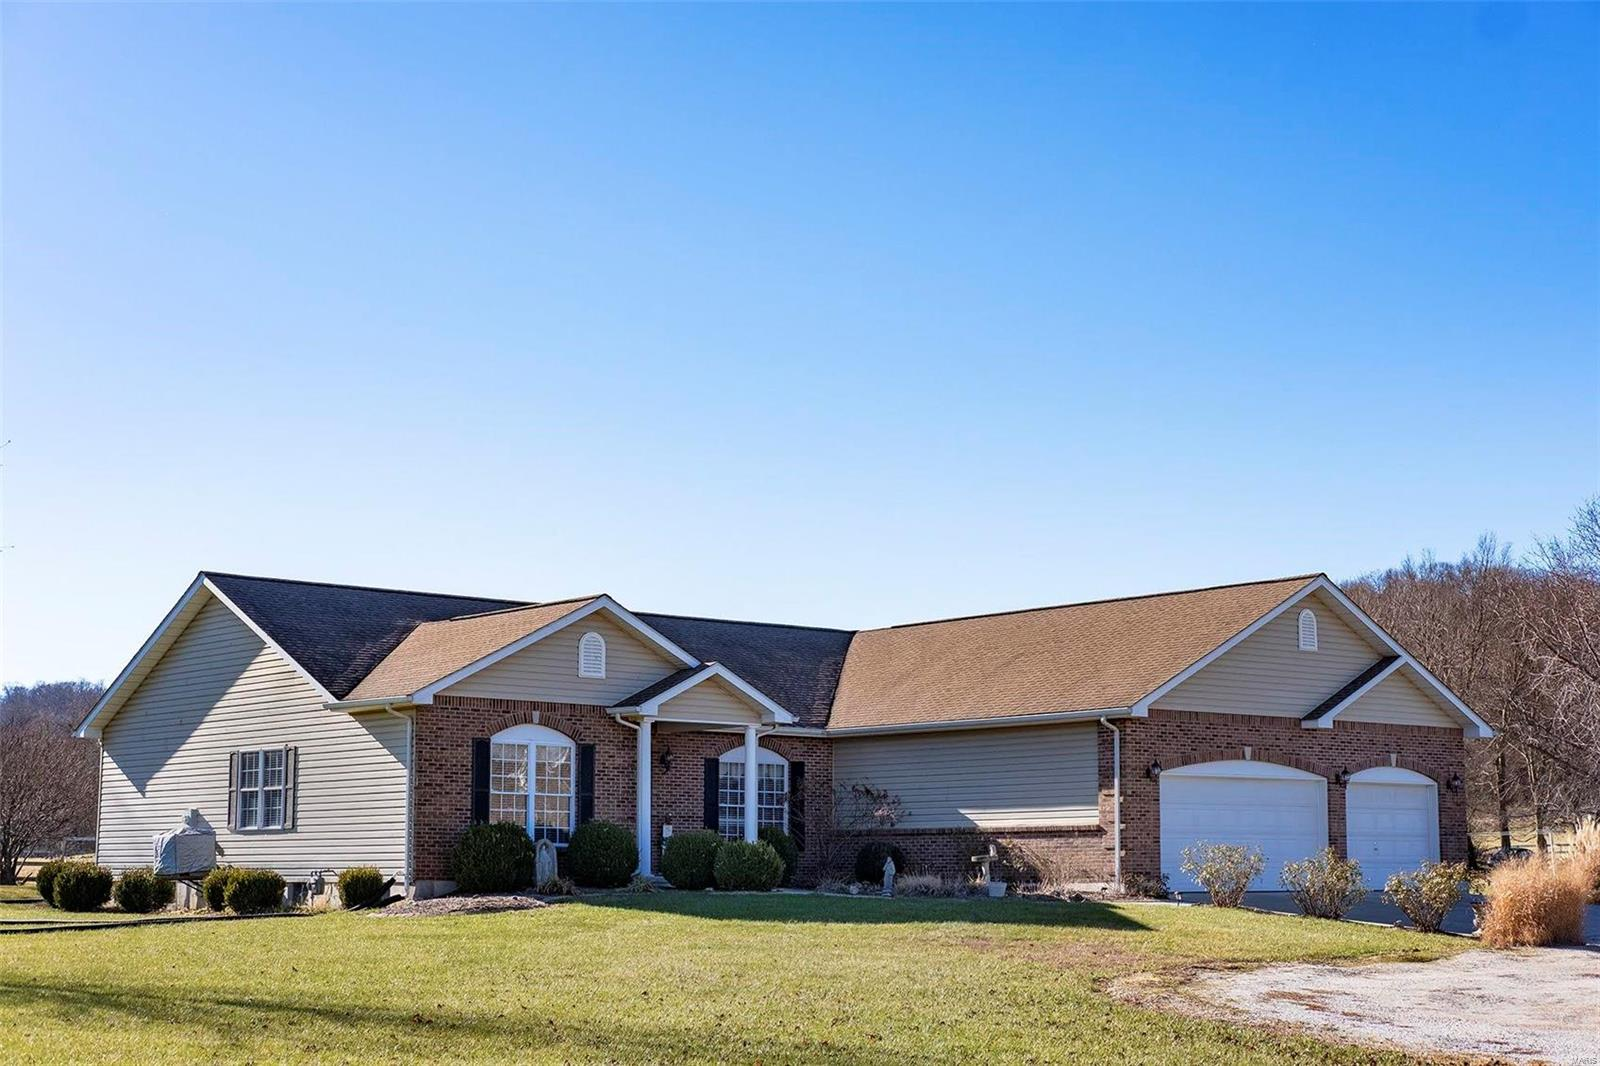 109 Hanks Lane Property Photo - Hardin, IL real estate listing